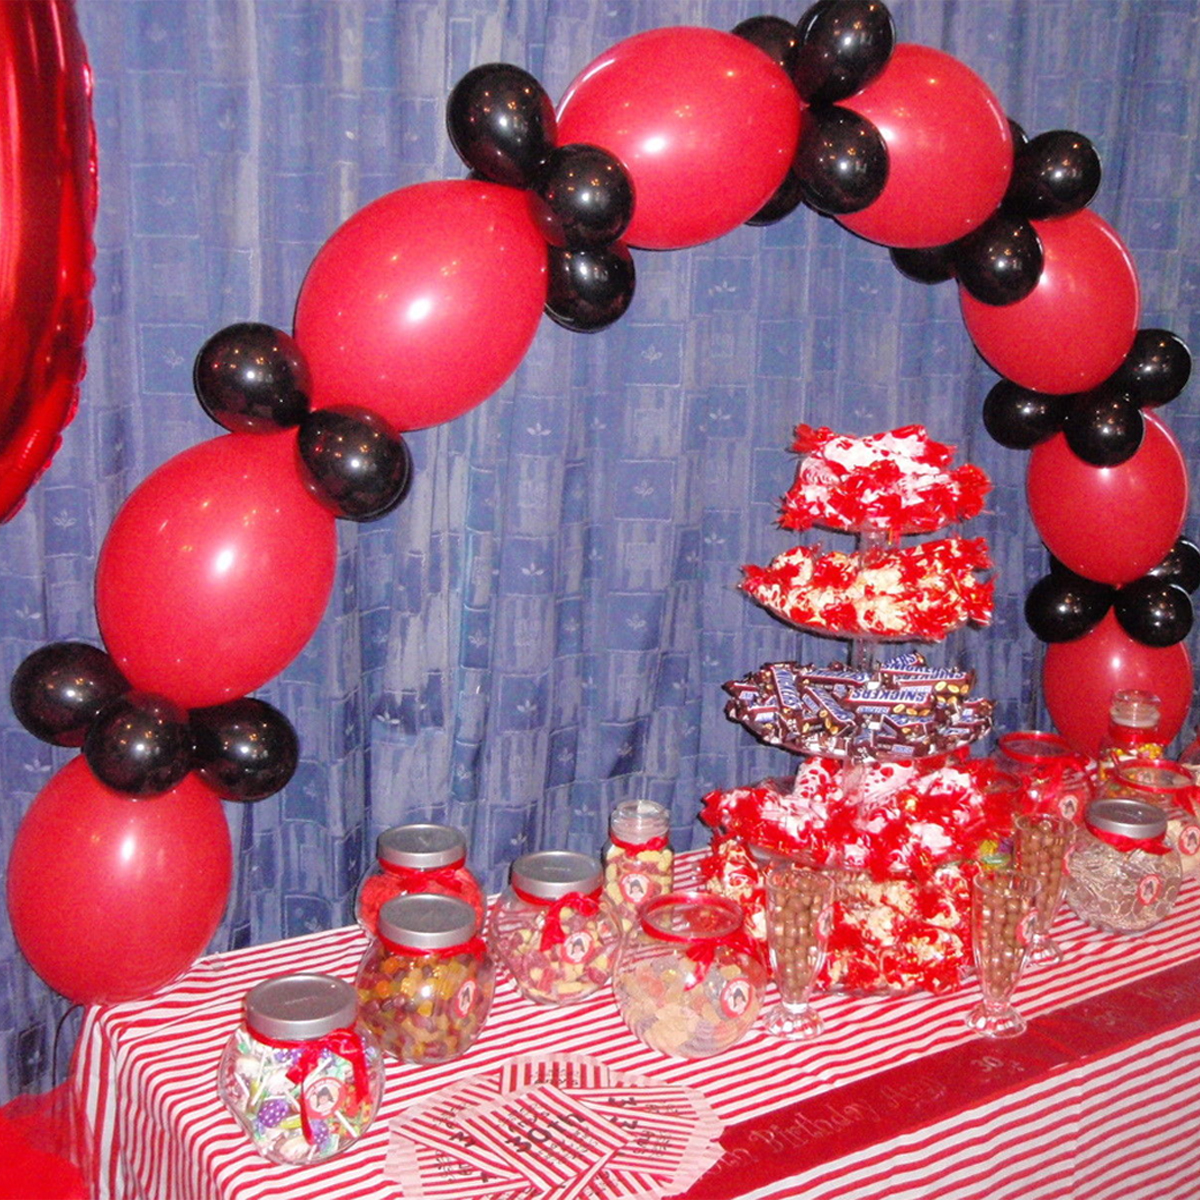 Us 53 05 Table Balloons Arch Frame Kit Good Decorations For Wedding Birthday Party Steel Events Supplies Accessories In Ballons